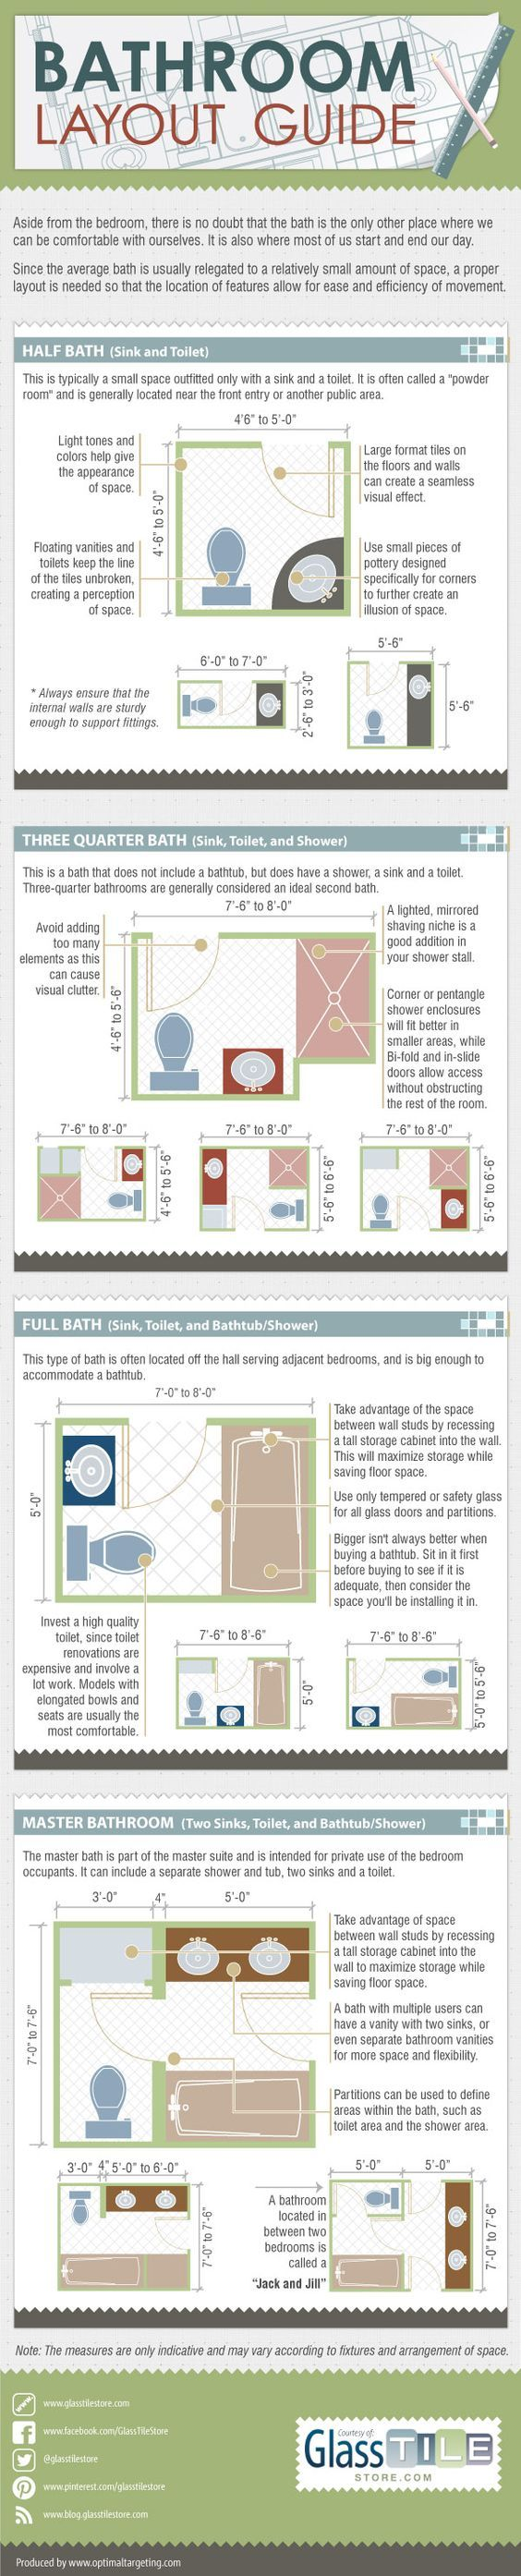 Bathroom Layout Guide: